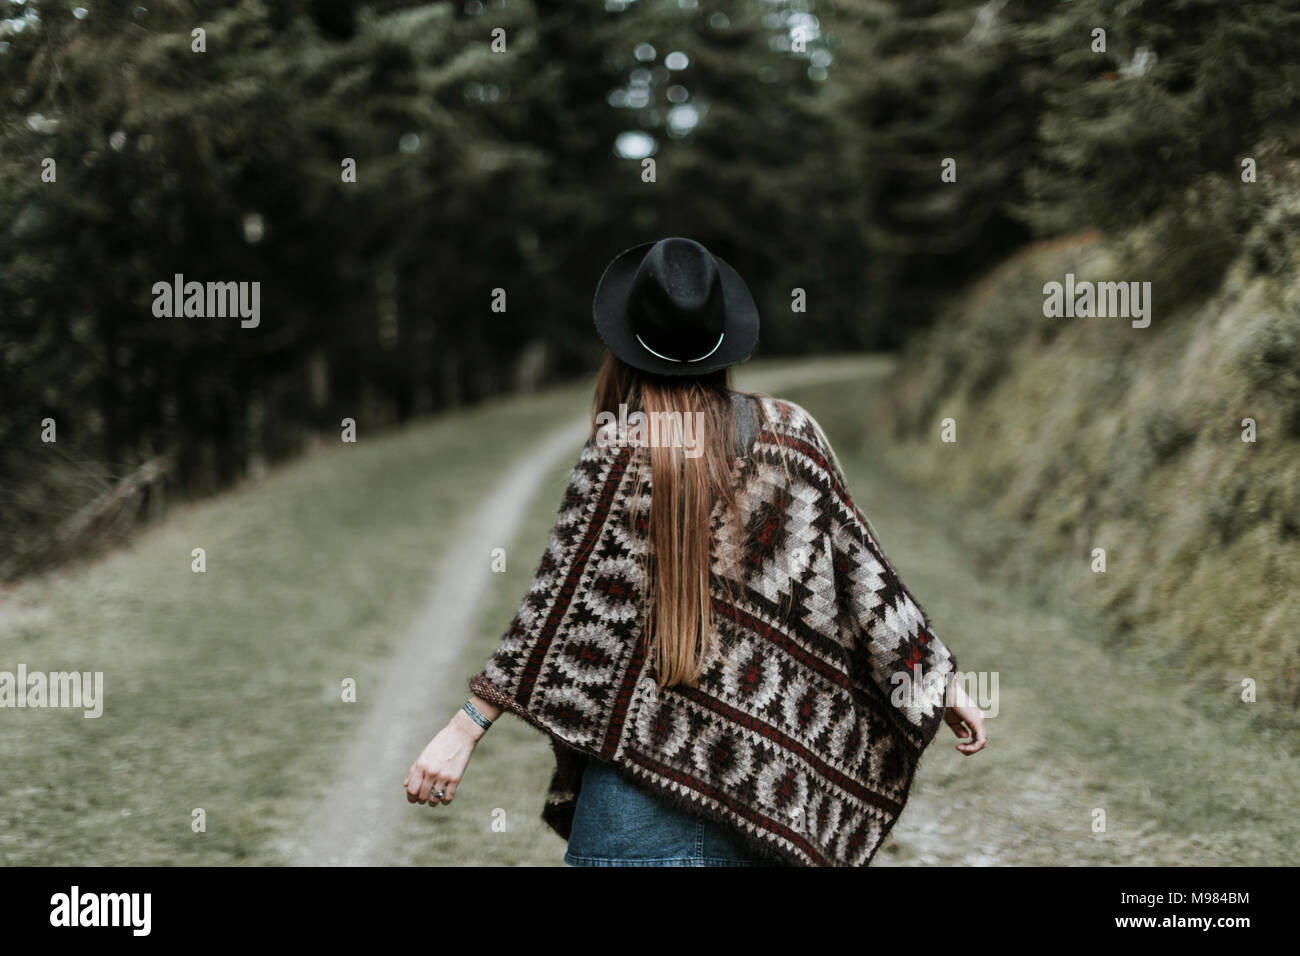 Back view of fashionable young woman wearing hat and poncho in nature - Stock Image